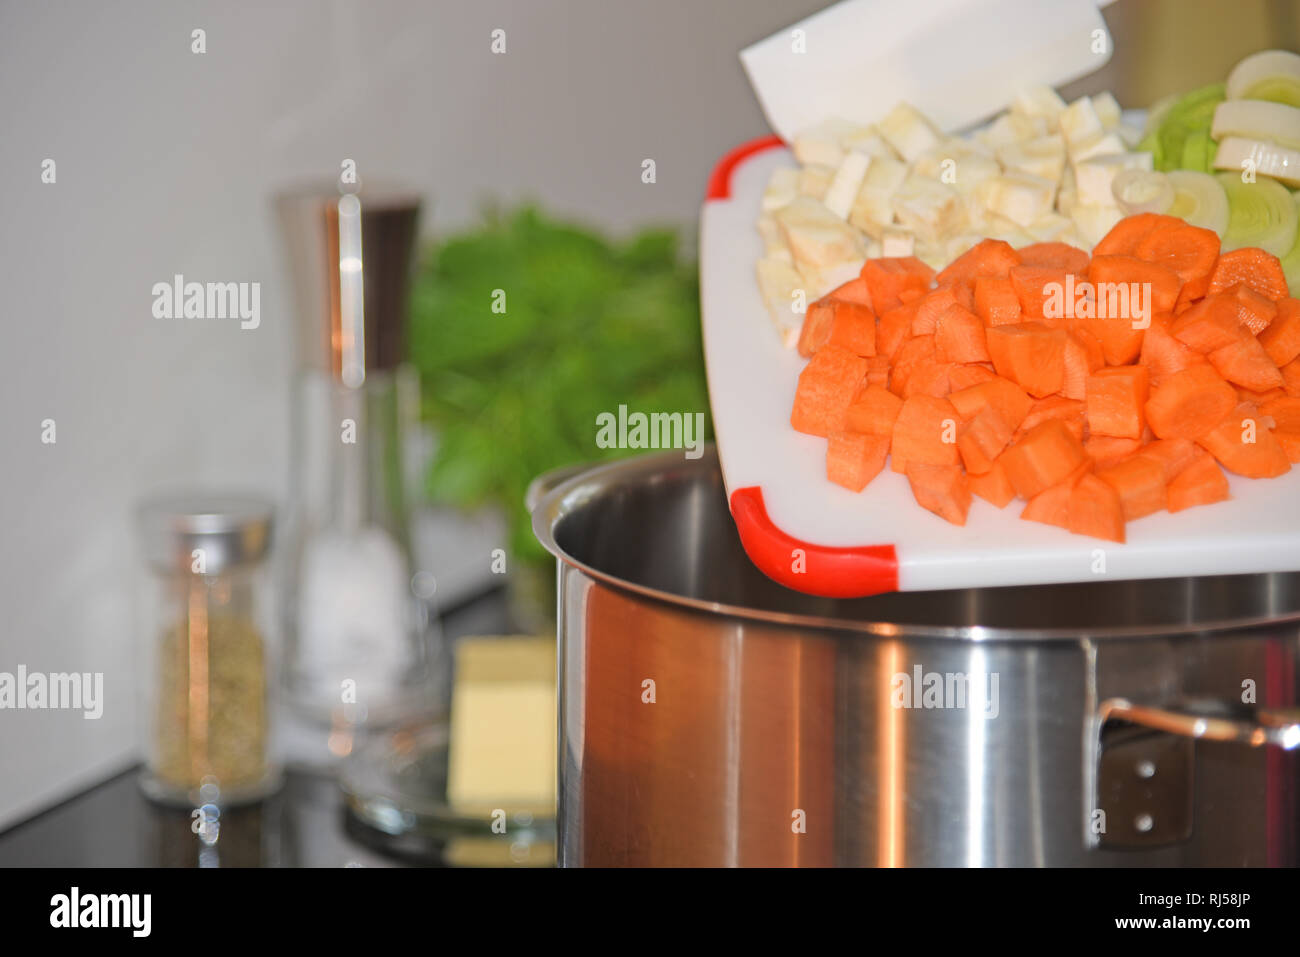 Kochplatte, Topf, Gem?se, Kartoffelsuppe Stock Photo